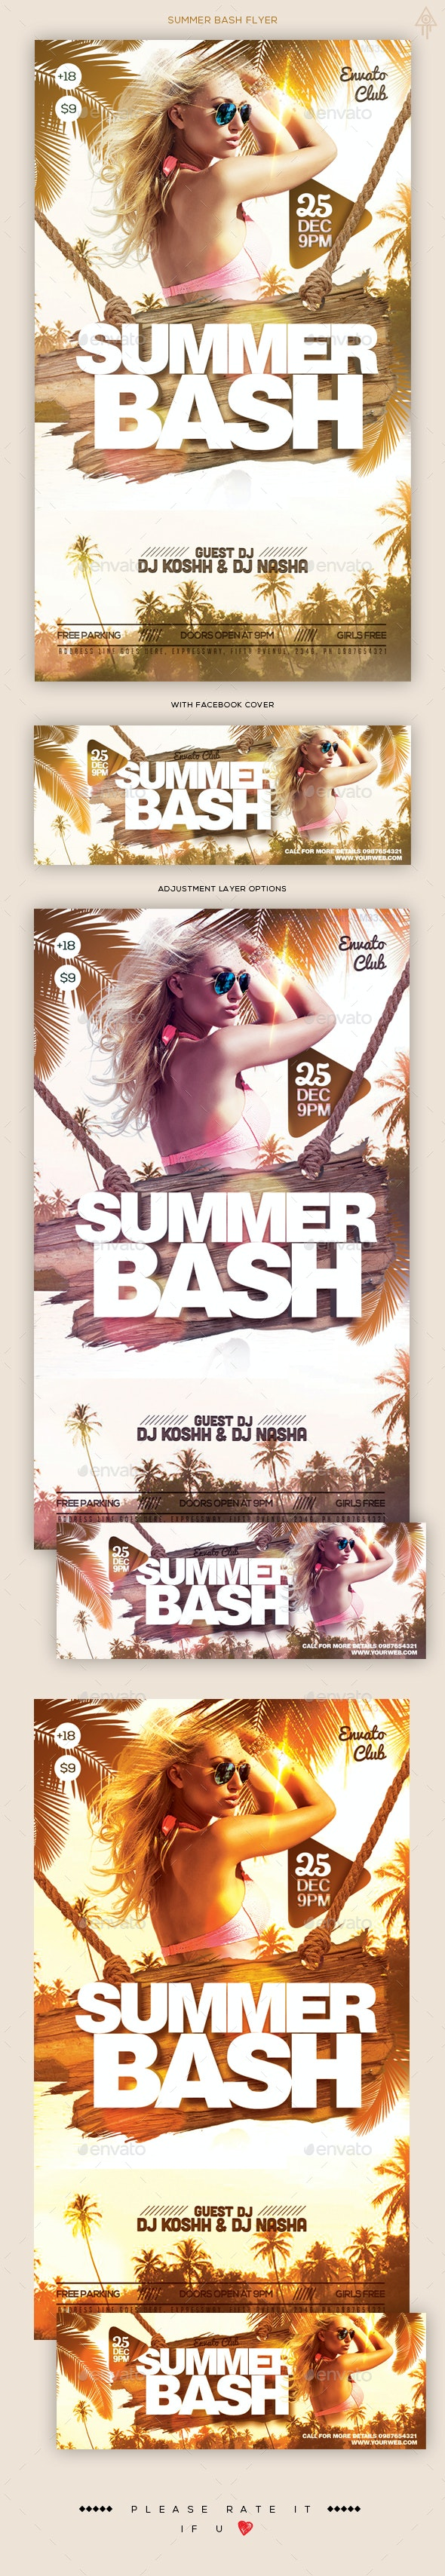 Summer Bash Flyer / Facebook Cover - Clubs & Parties Events